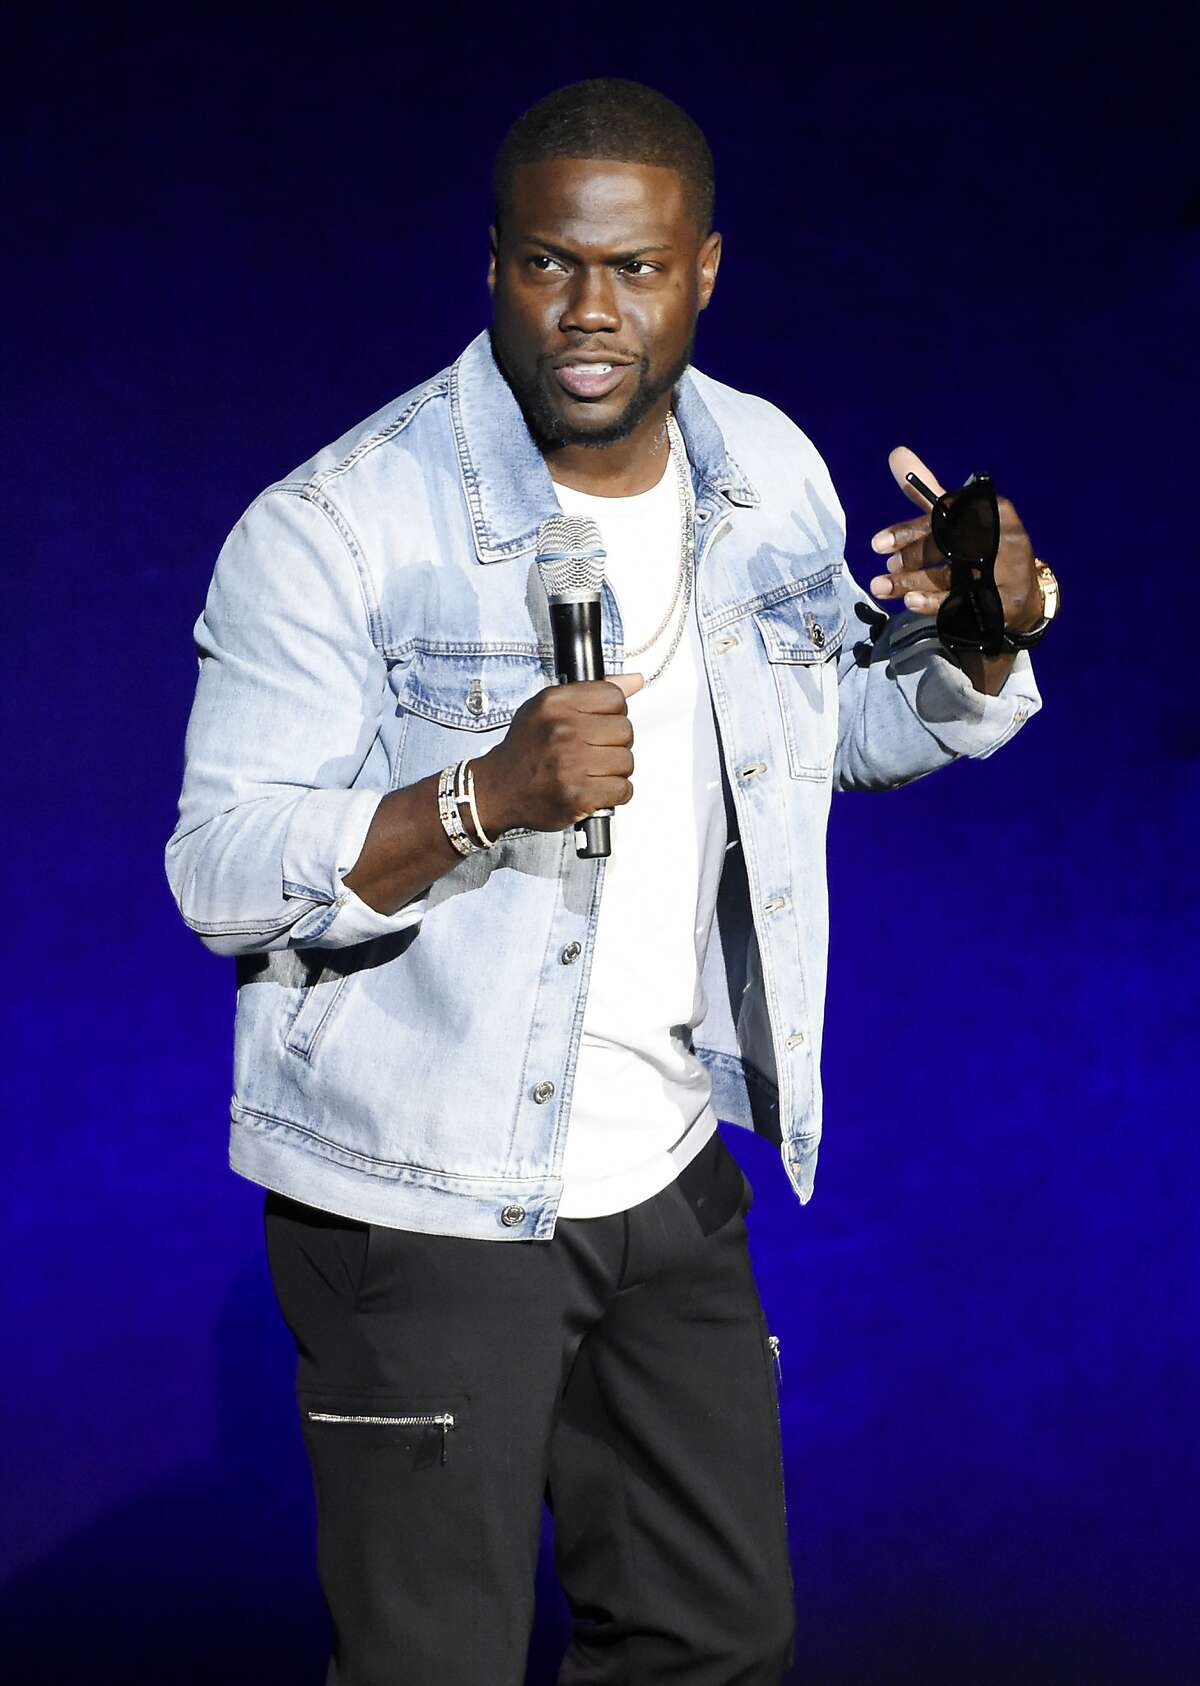 Kevin Hart, star of the upcoming film